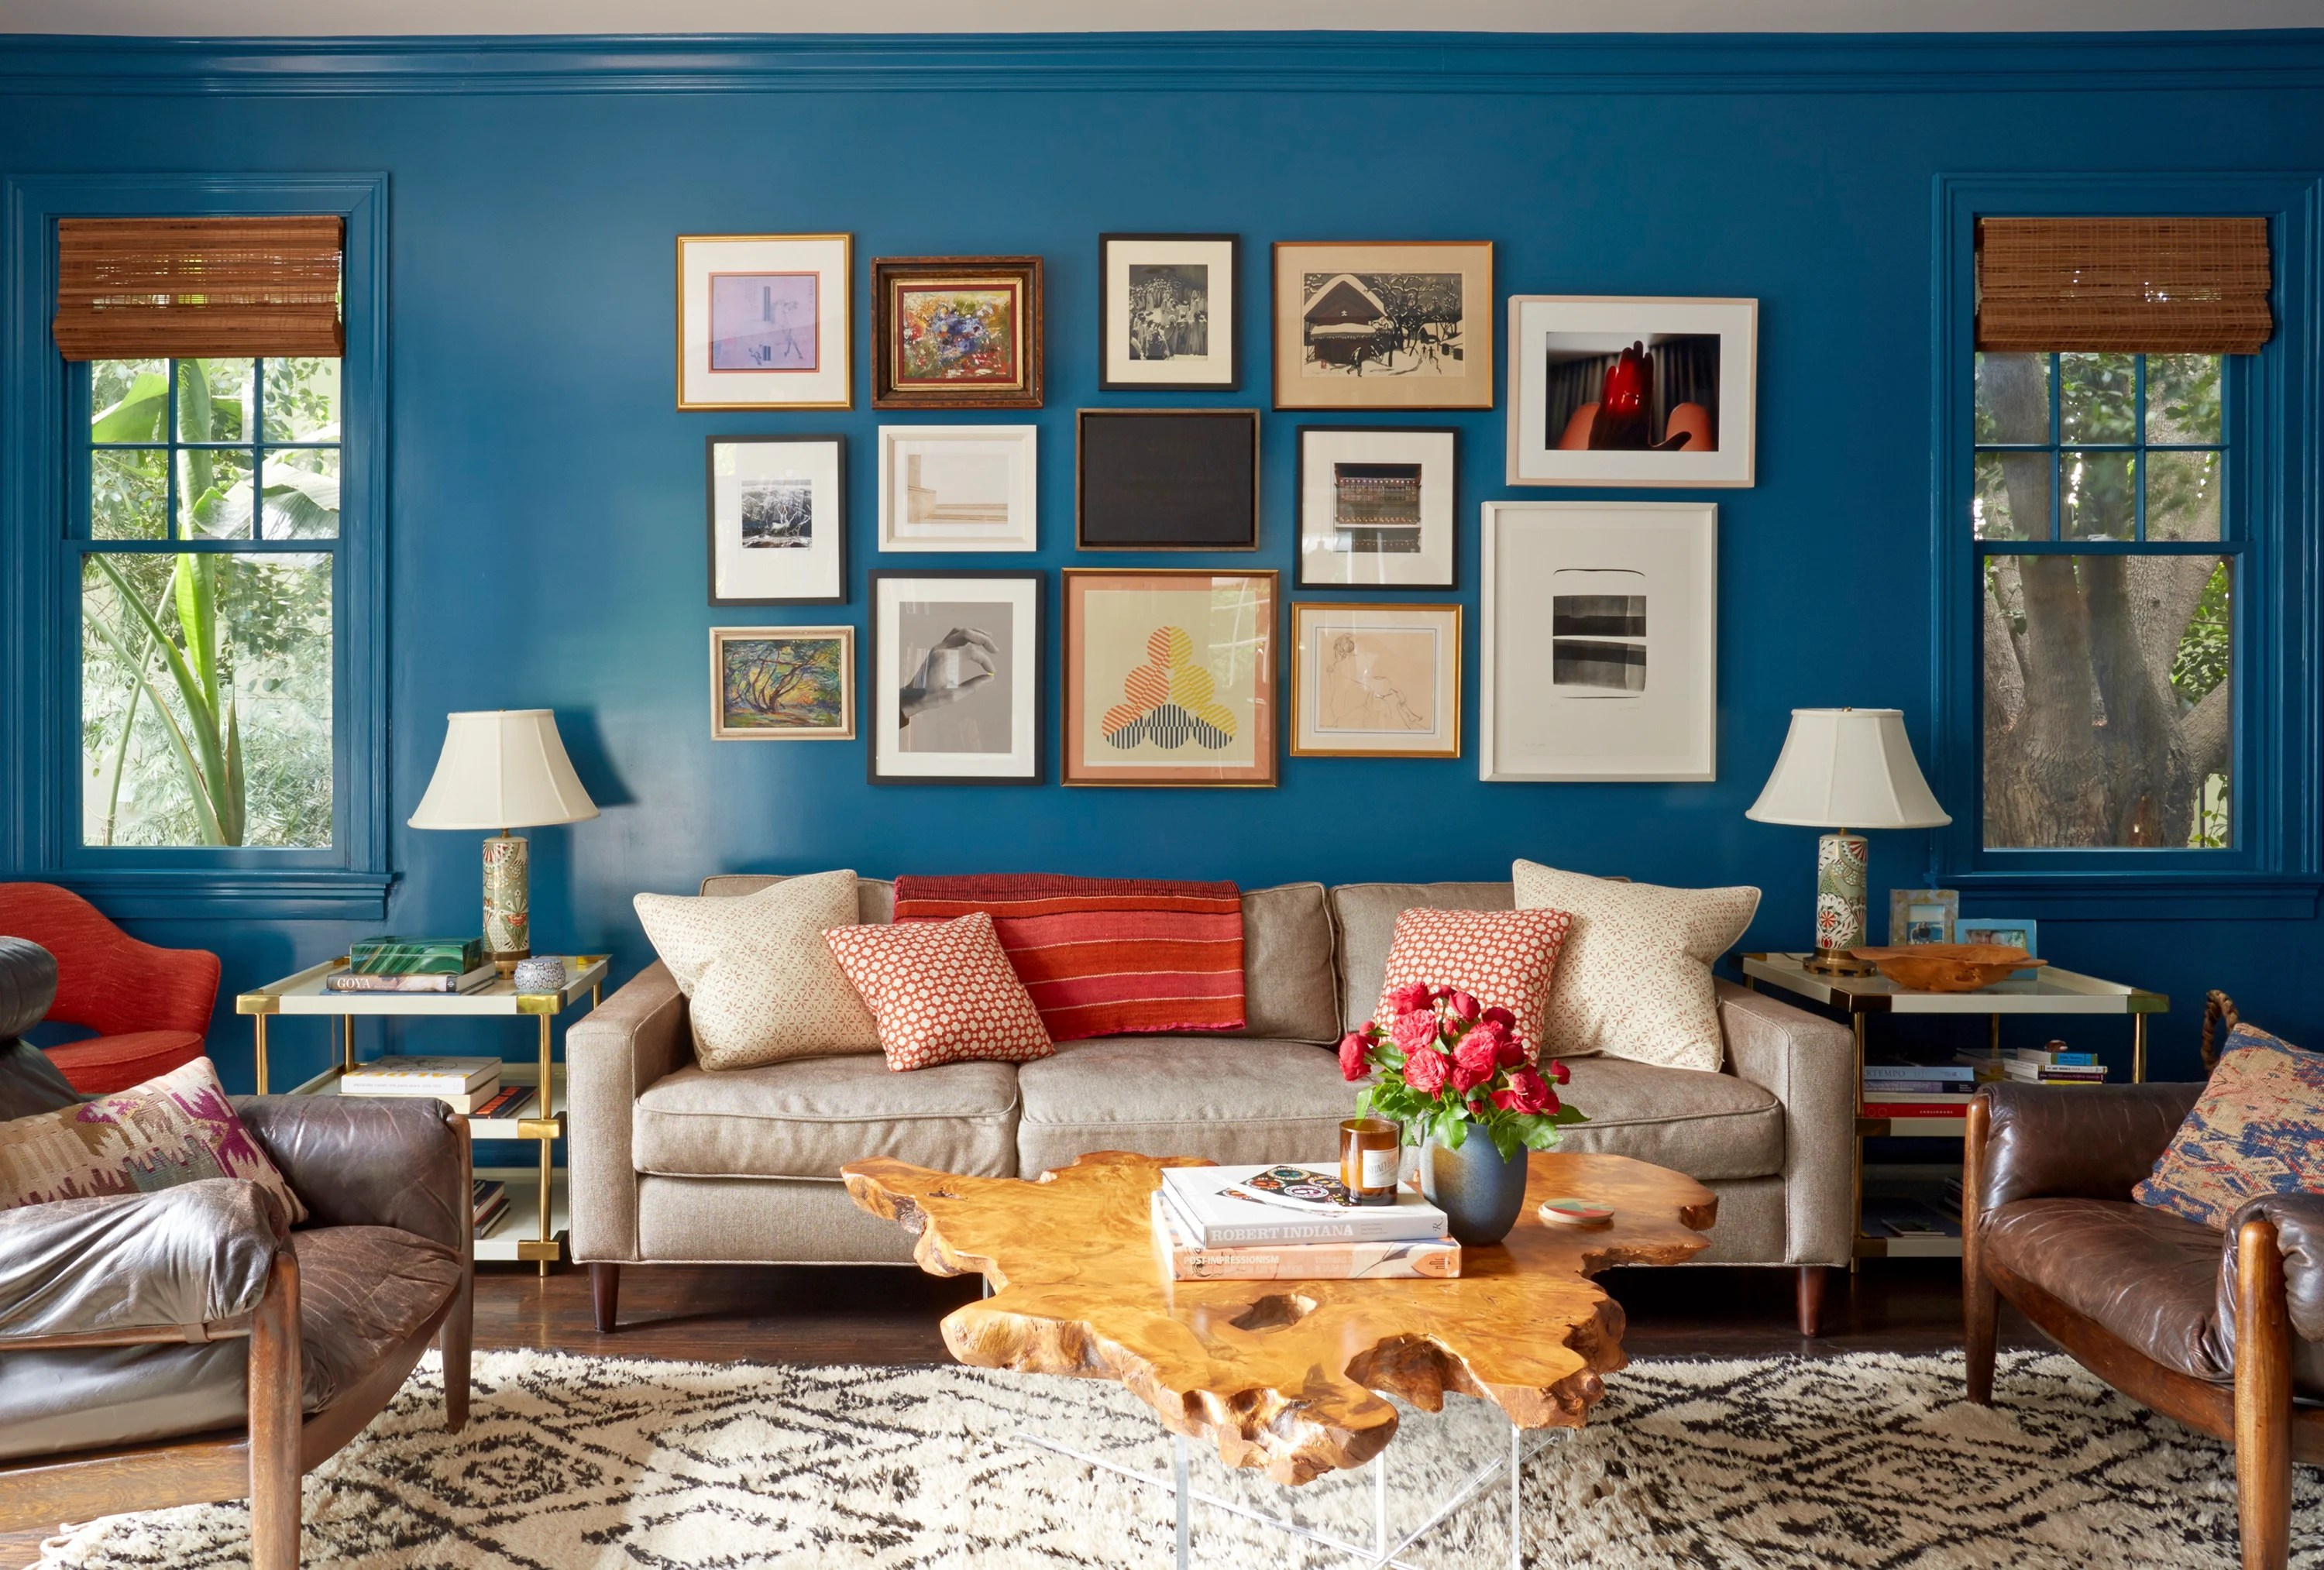 Decorate My Home